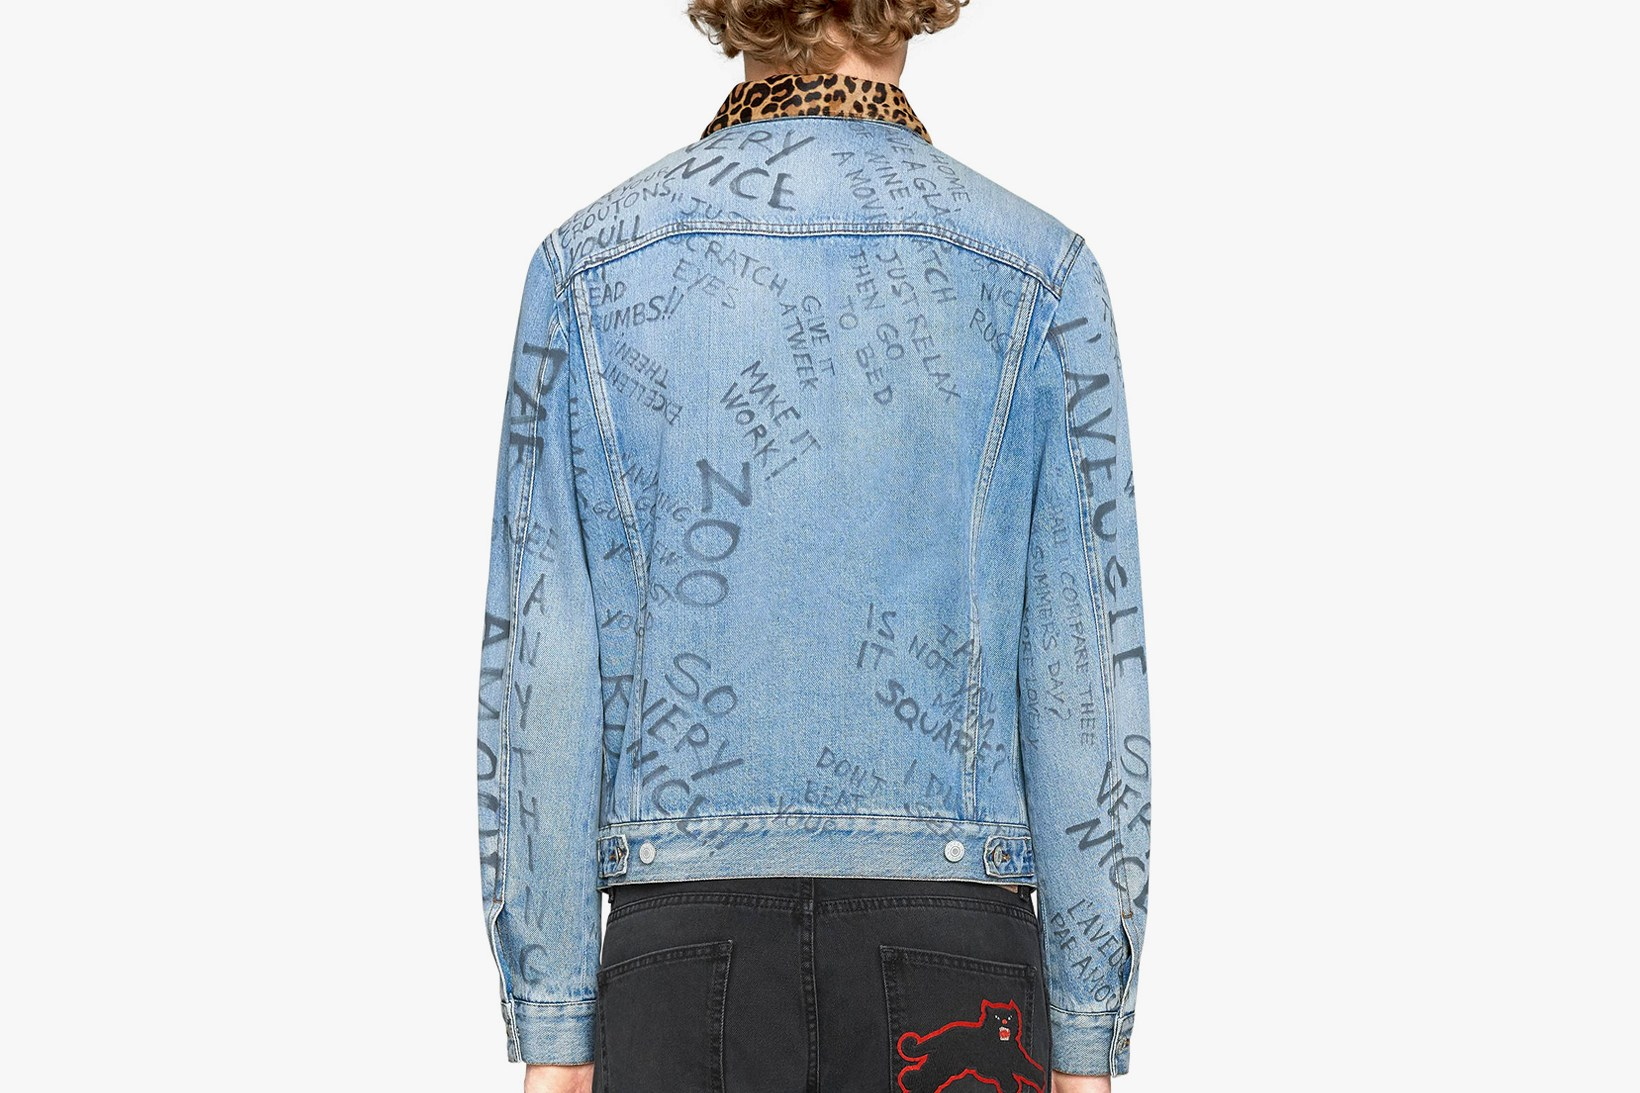 gucci-scribbled-writing-denim-jacket-2